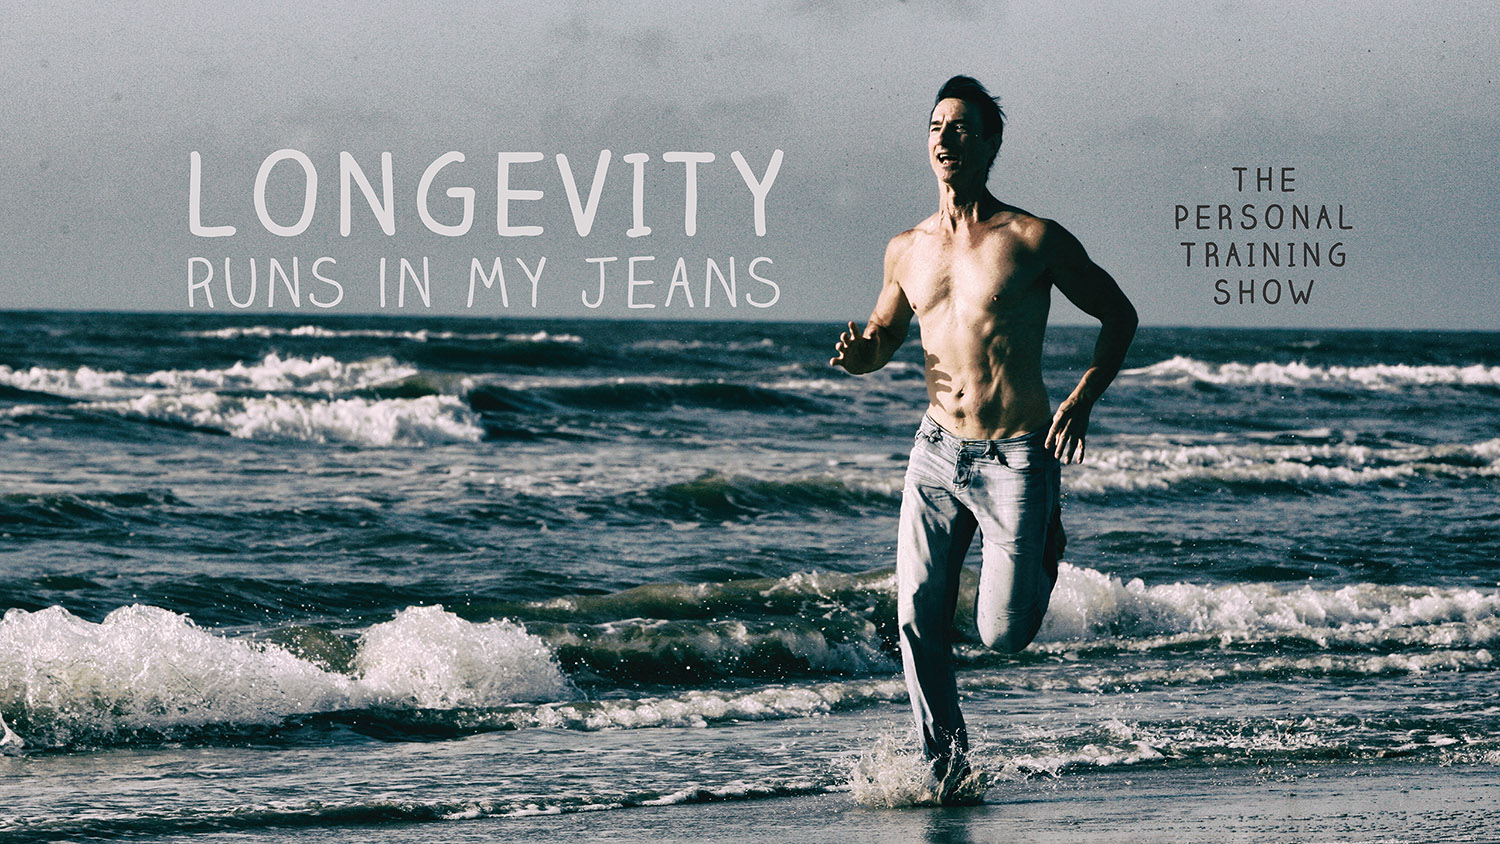 the-personal-training-show-ad-longevity-runs-in-my-jeans.jpg